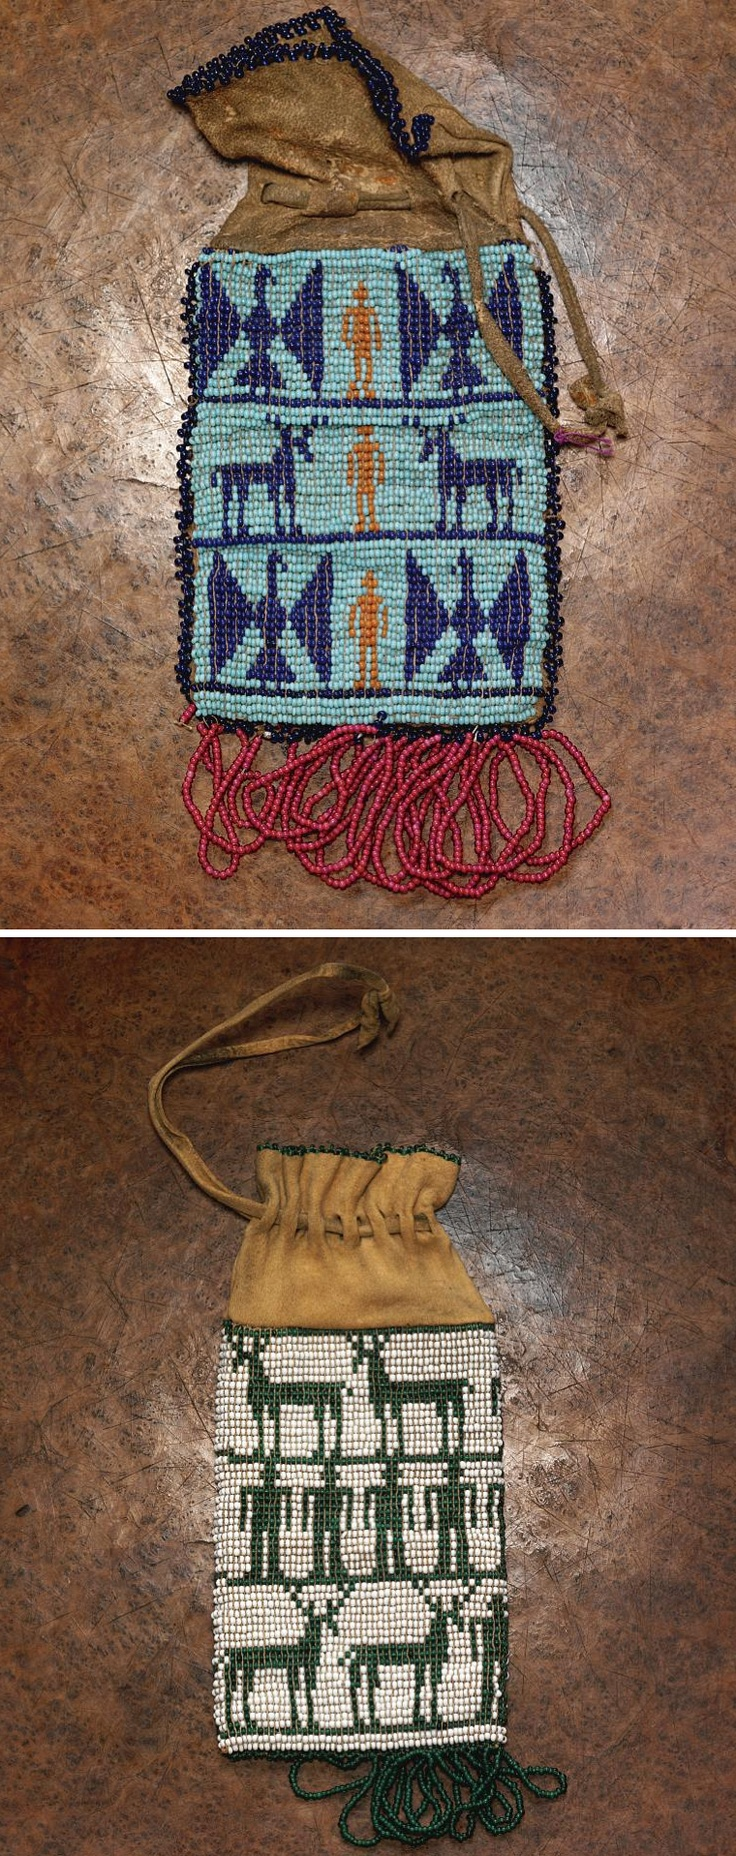 TWO WASCO BEADED PICTORIAL POUCHES  the white ground pouch with pictorial elements on both sides.  lengths: 6 1/4 in. and 6 in. without beaded fringe